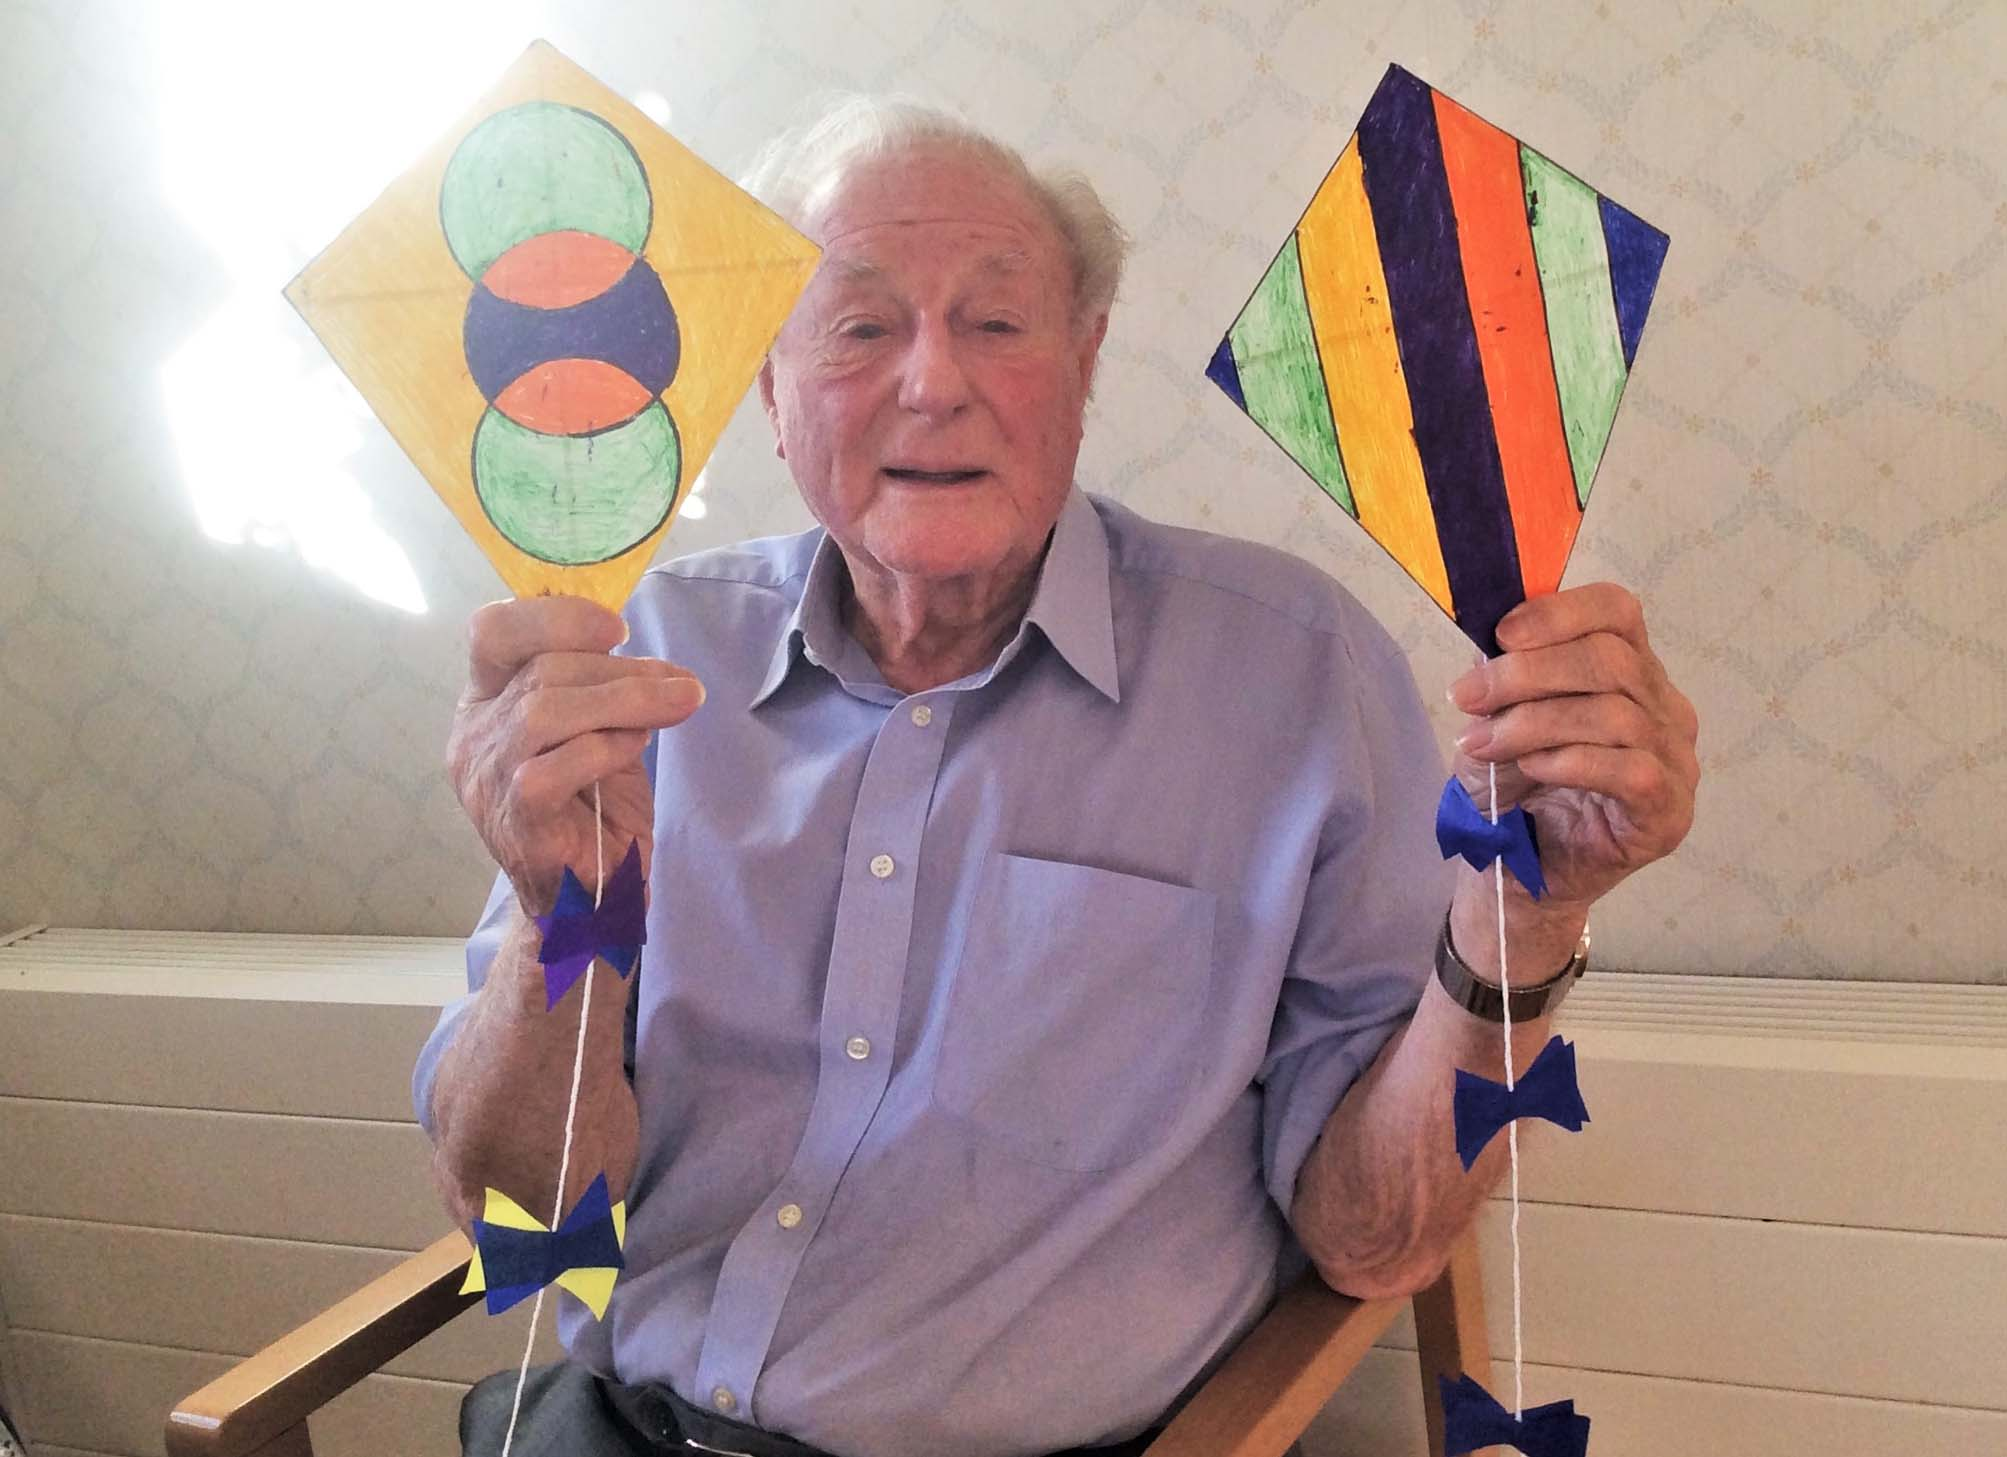 Crafting kites at Avery House Care Home for the International Kite Festival